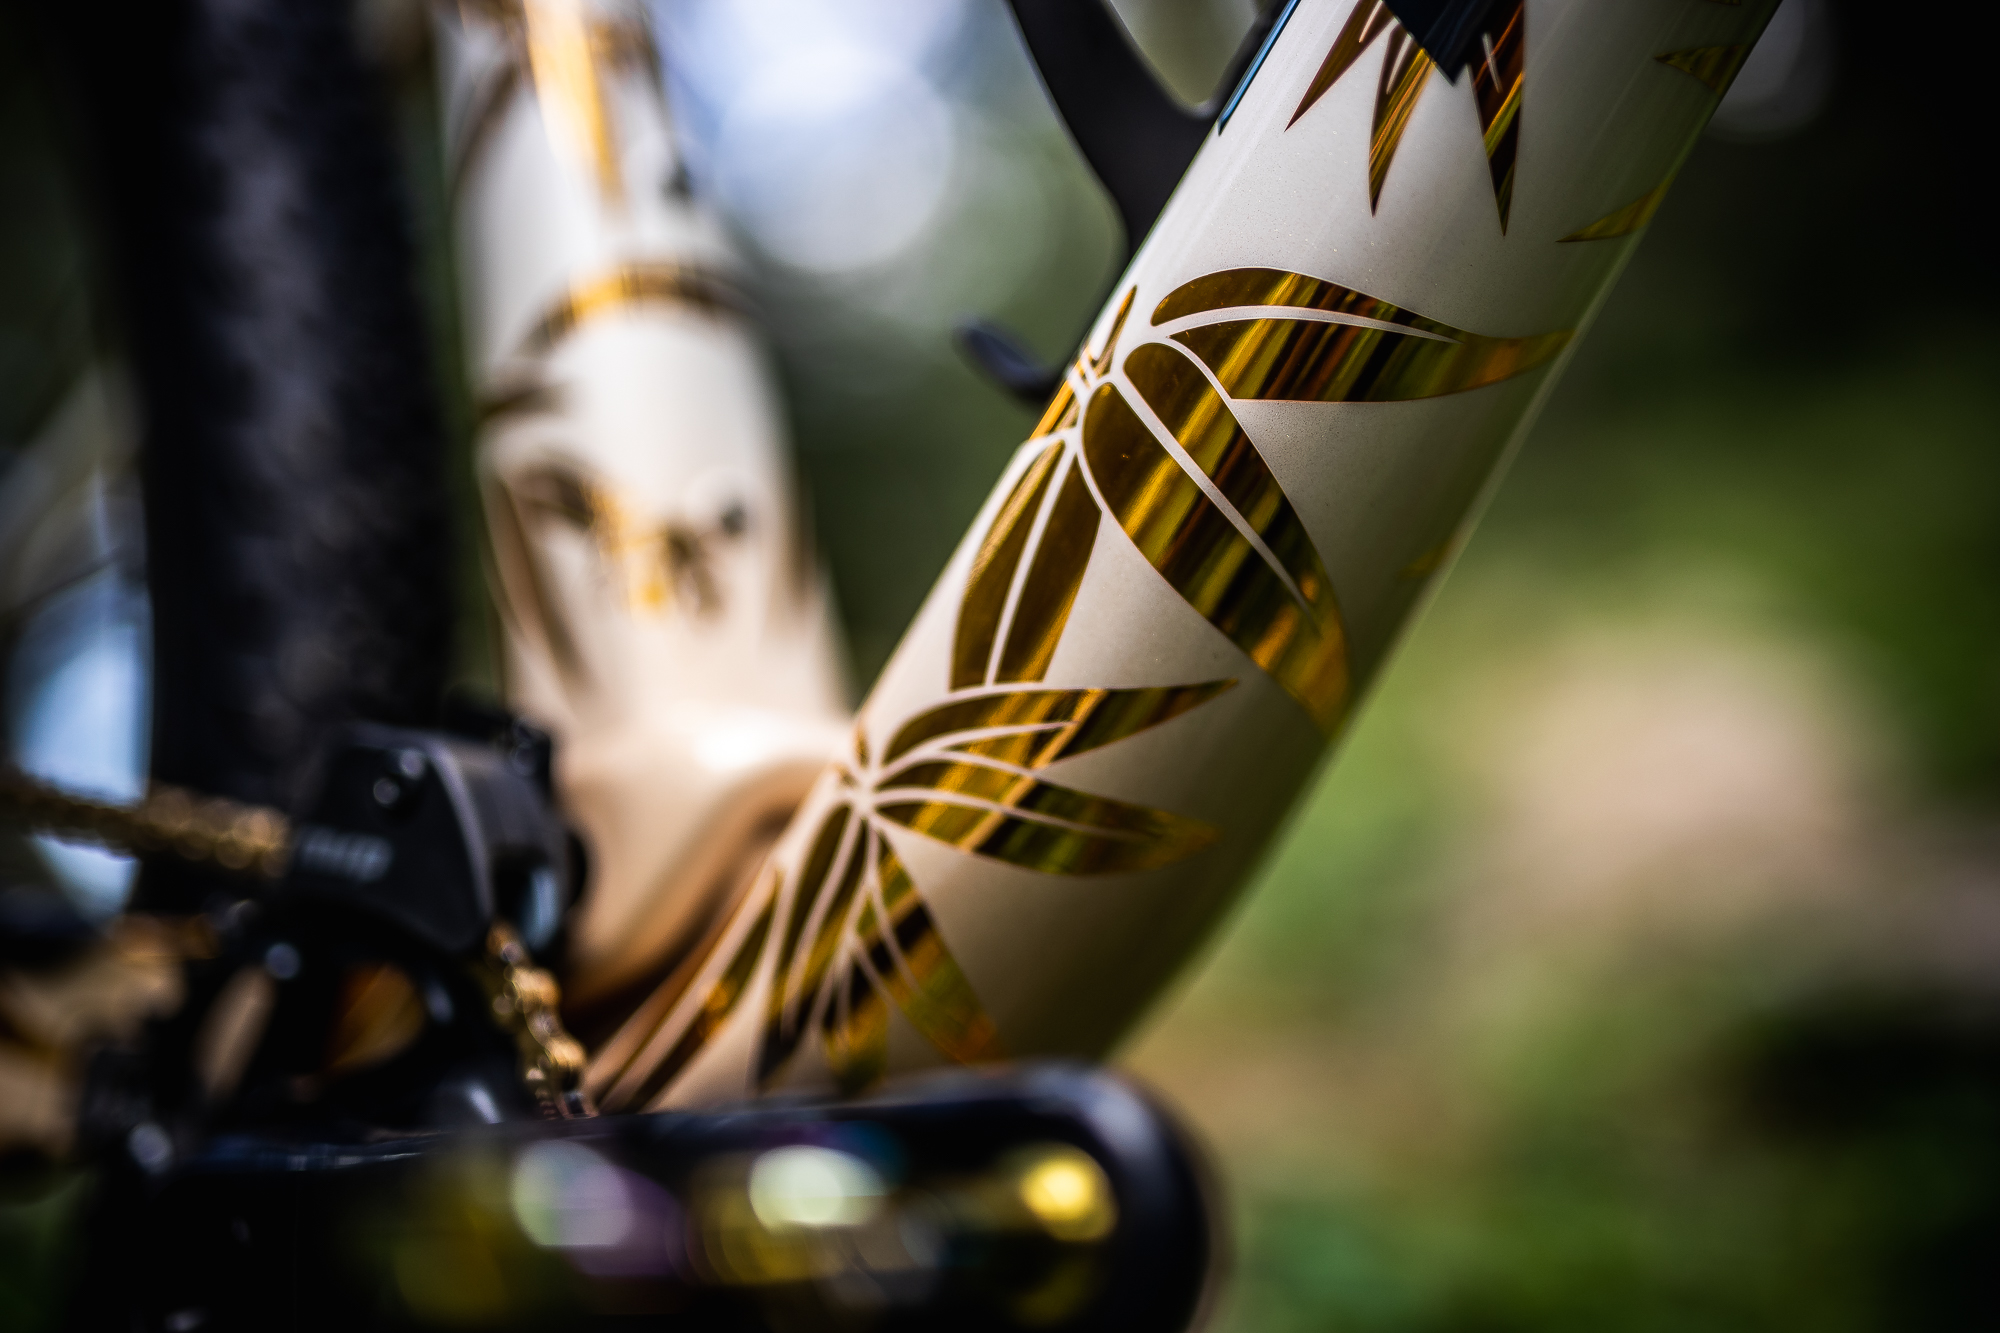 Detailed image near bottom bracket on bike showing golden chroma bamboo leafs and misty clouds behind it